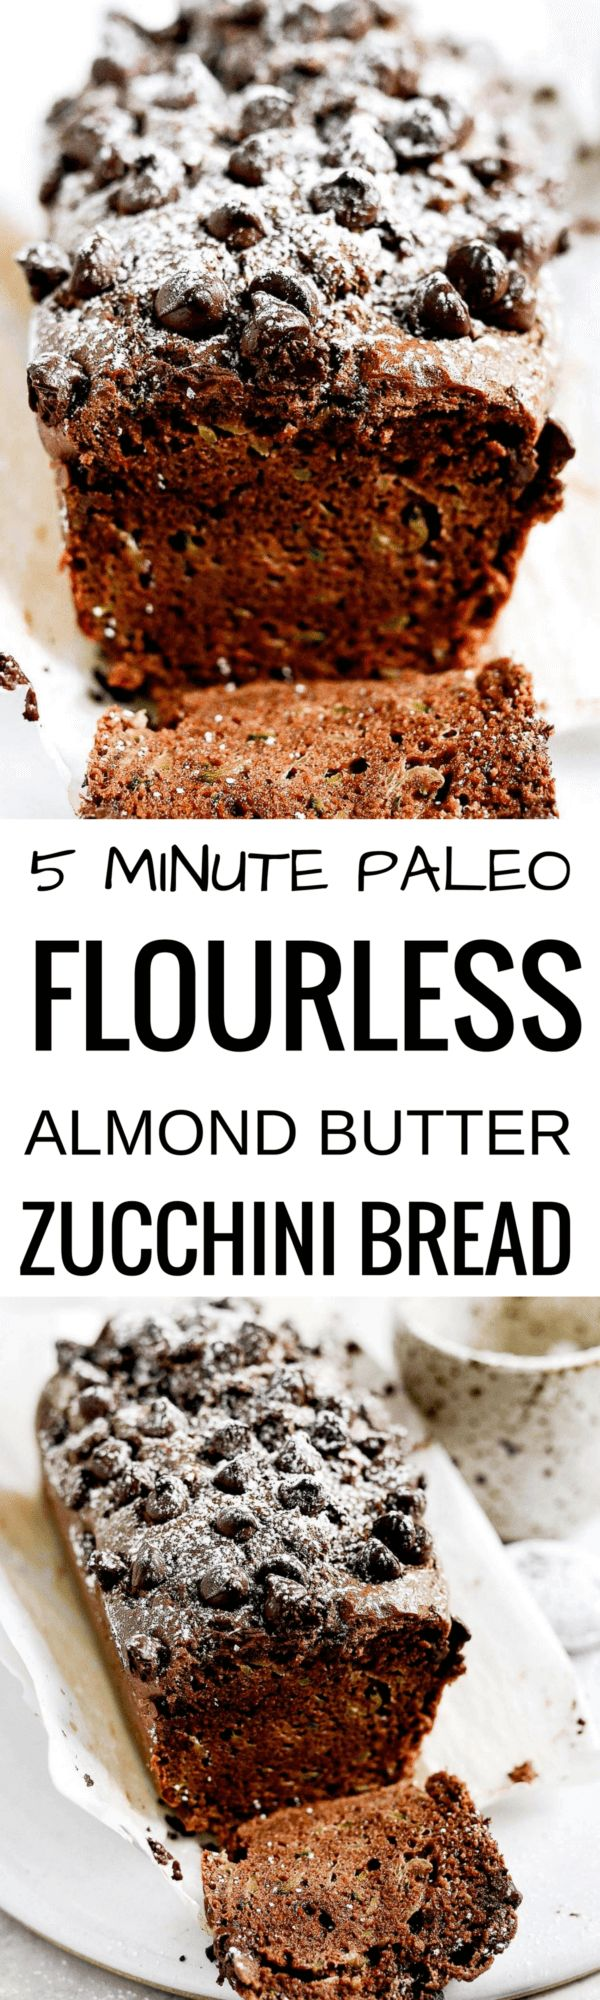 This paleo chocolate zucchini bread is soft, light, and moist, plus gluten free! It's ready for baking in 5 minutes! Easy to whip up in the food processor. Freezer friendly and a crowd pleaser! Easy paleo diet recipes. Best gluten free bread. Easy paleo bread recipe. Best paleo zucchini bread recipe. Easy gluten free zucchini bread. Best gluten free zucchini bread